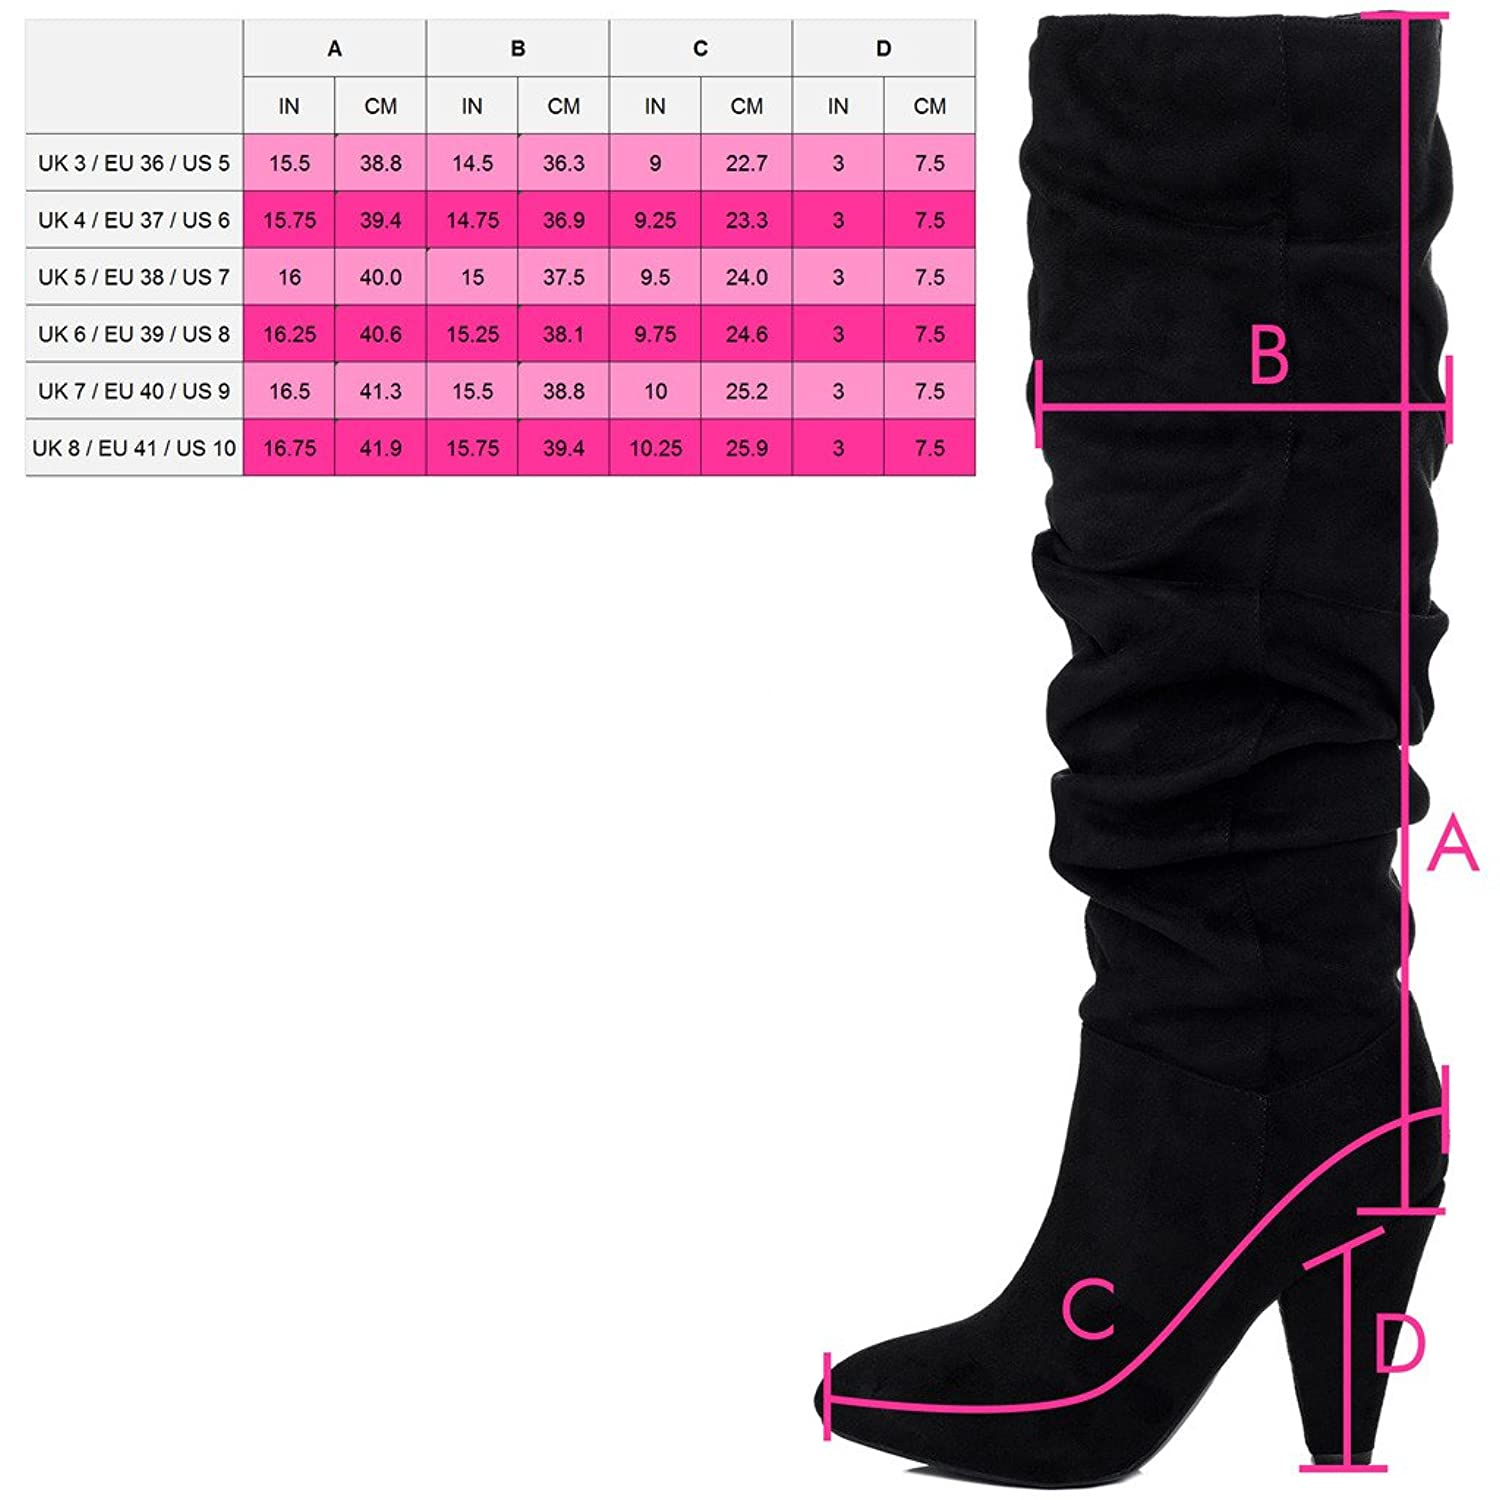 High Heel Knee High Tall Boots Black Leather Style Sz 5: Amazon.co.uk:  Shoes & Bags